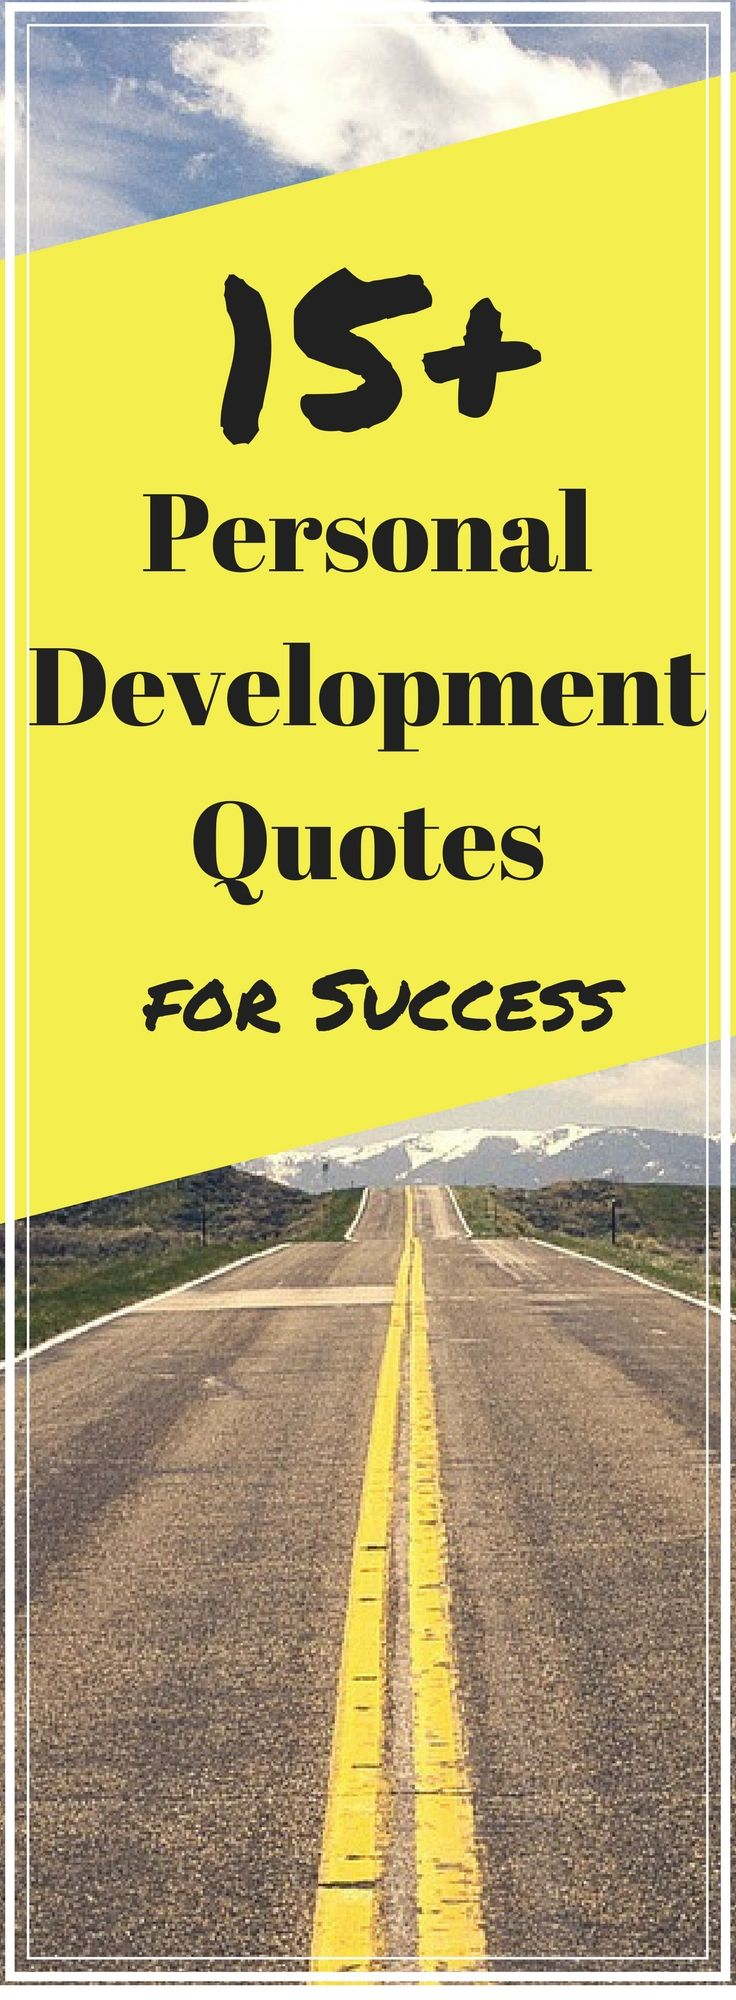 Personal Development Quotes Personal Development Quotes For Success  Inspirational